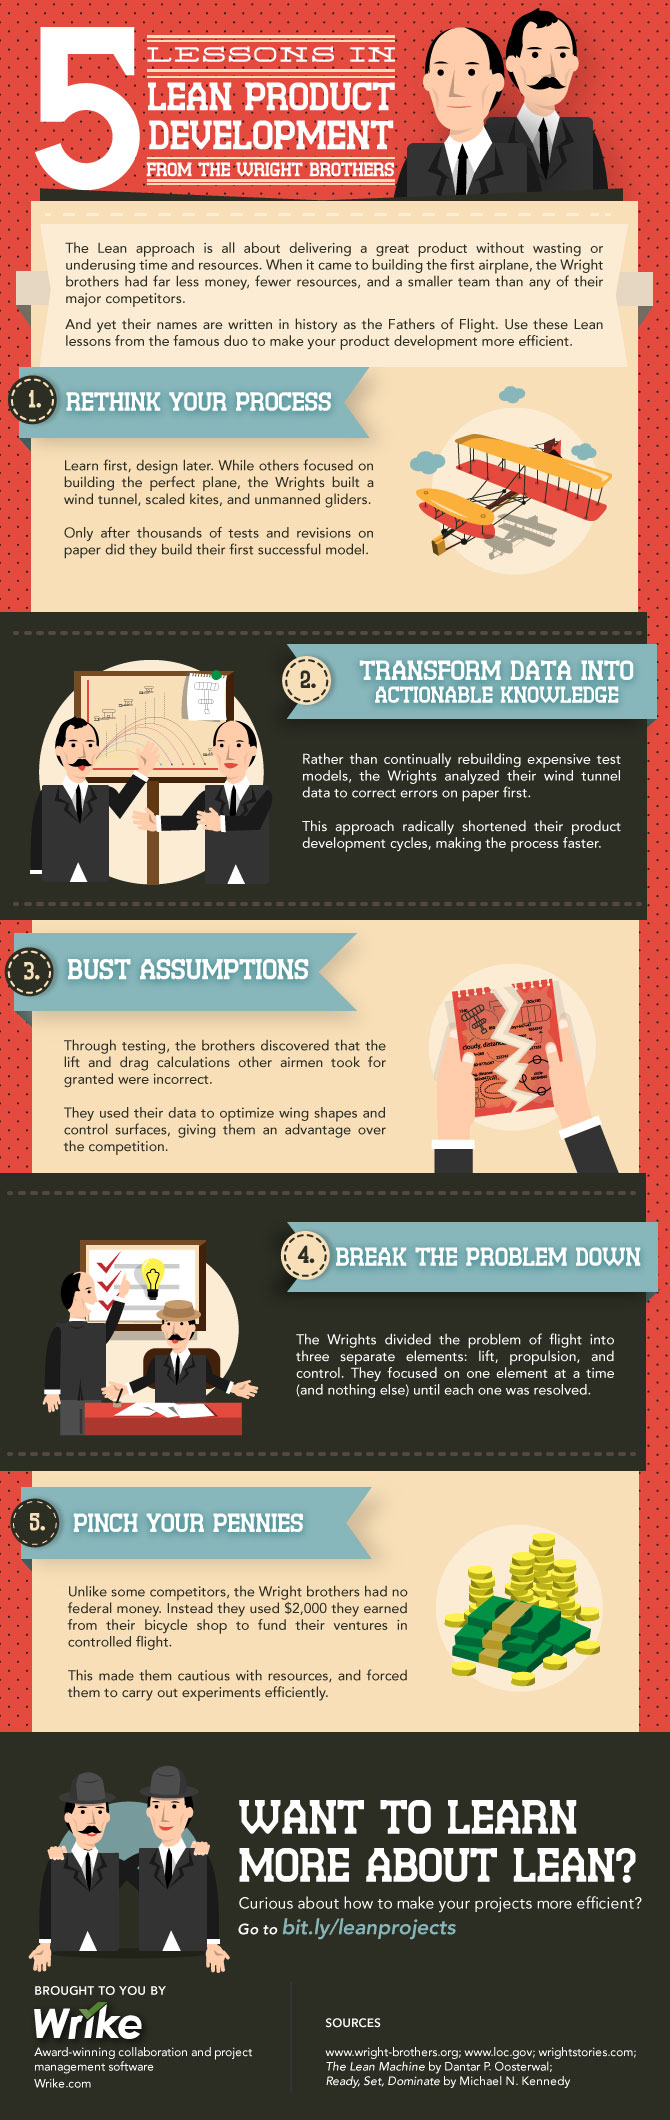 Lean Product Development Infographic